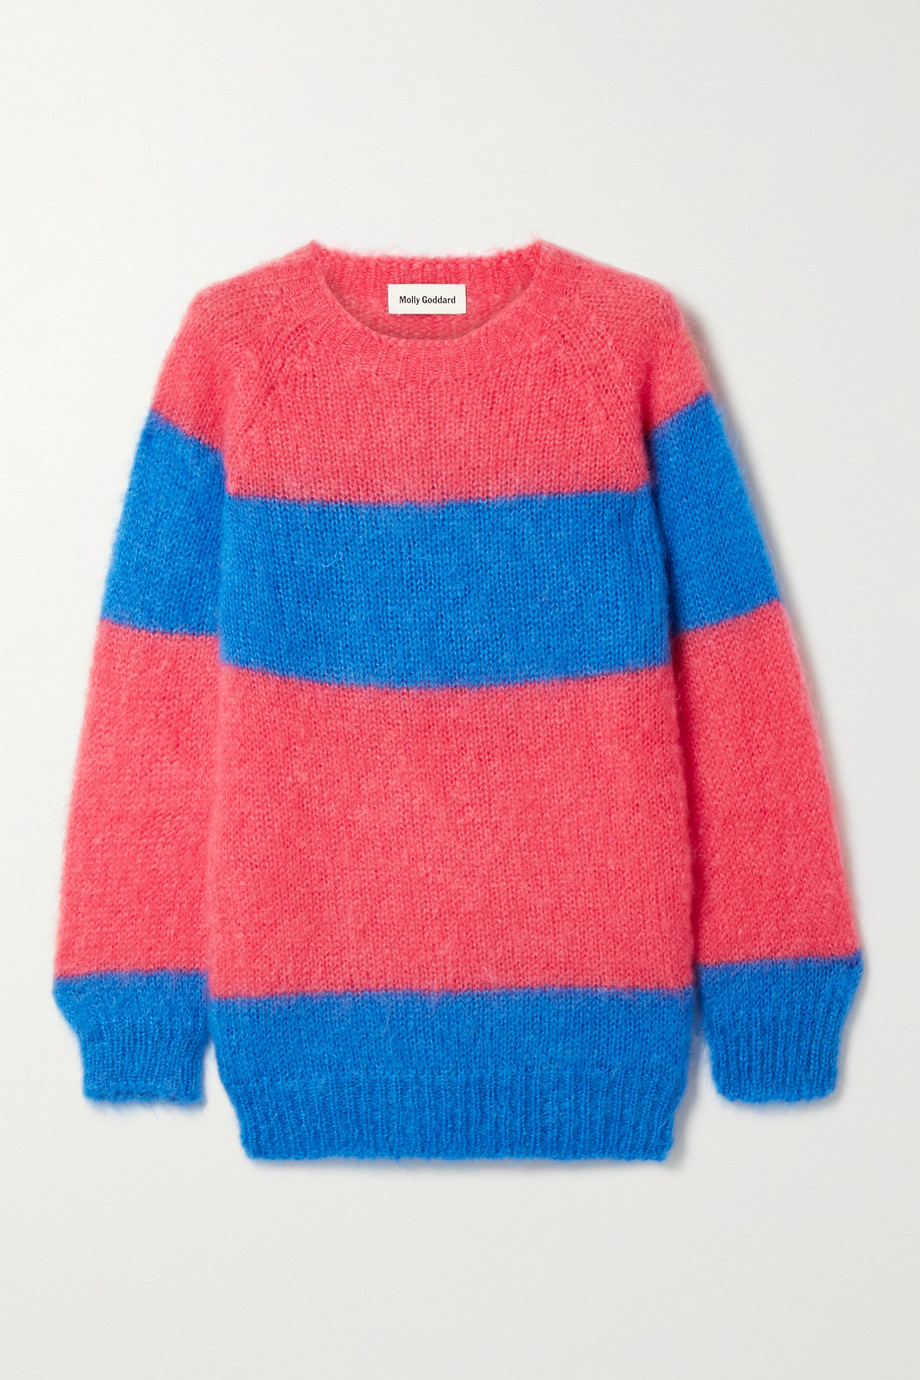 Molly Goddard Noah striped mohair-blend sweater